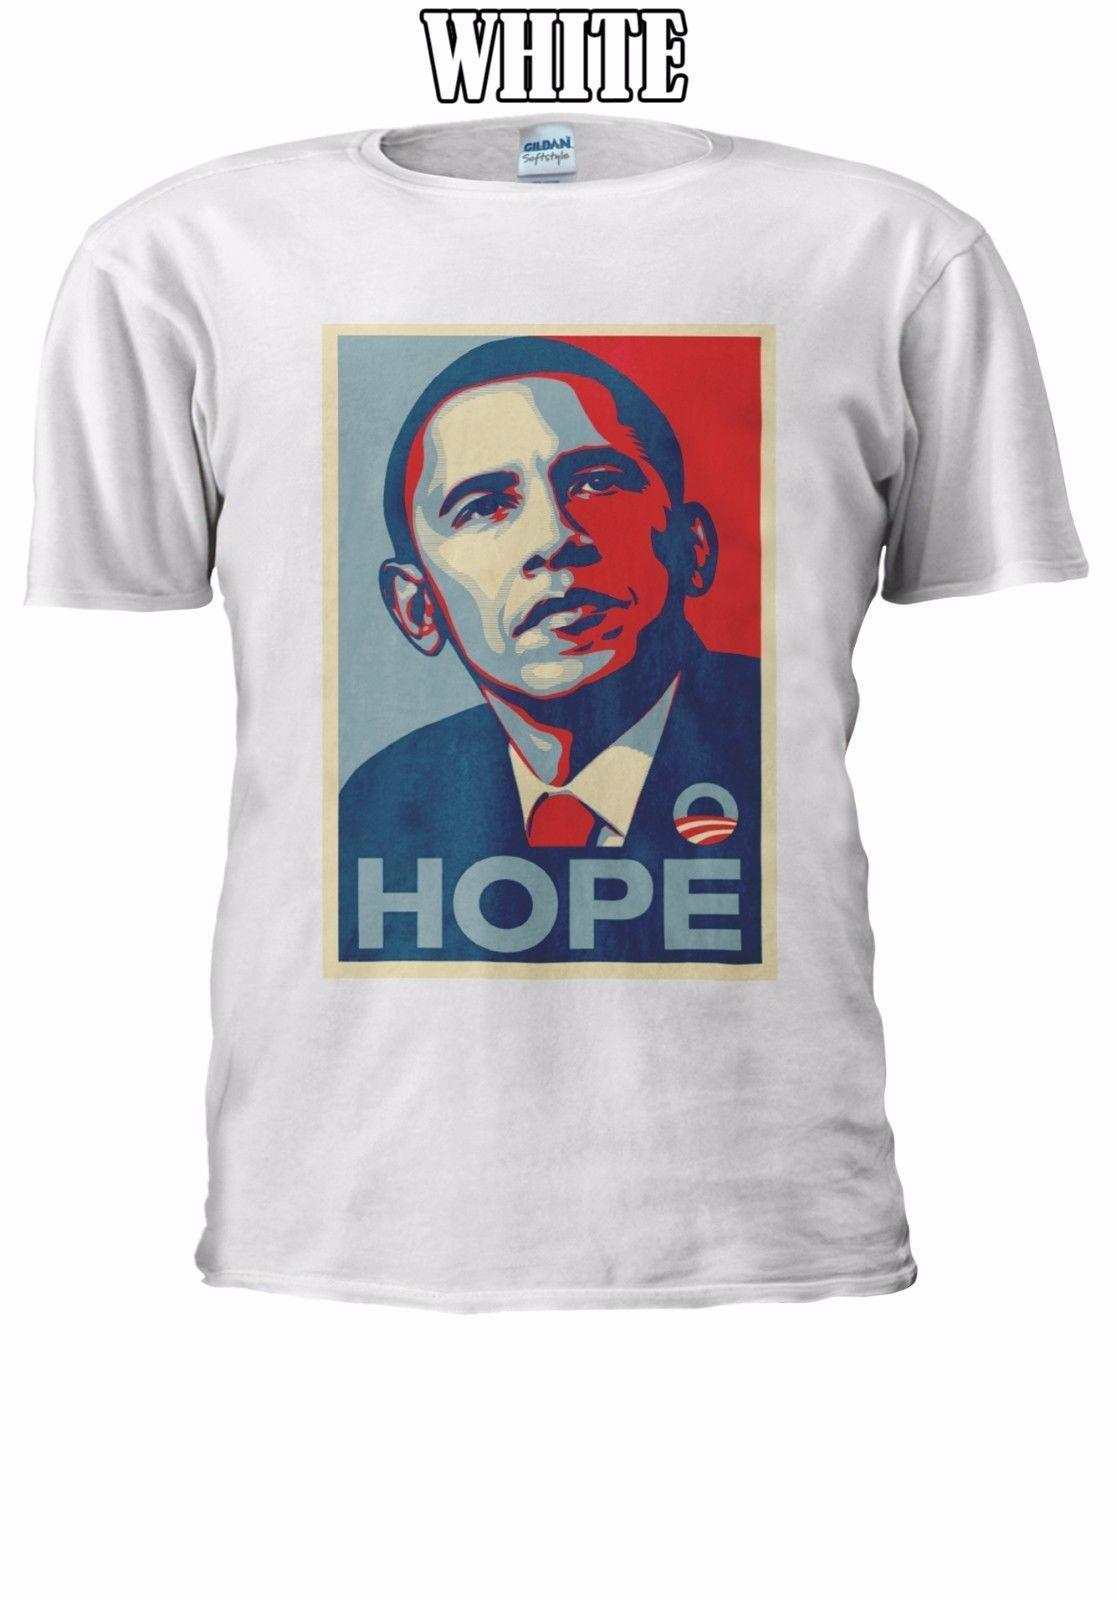 5a6eb5c5fd792 US President Barack Obama Hope T Shirt Vest Tank Top Men Women Unisex 2613  Awesome Shirts Cool T Shirts For Men From Yuxin09